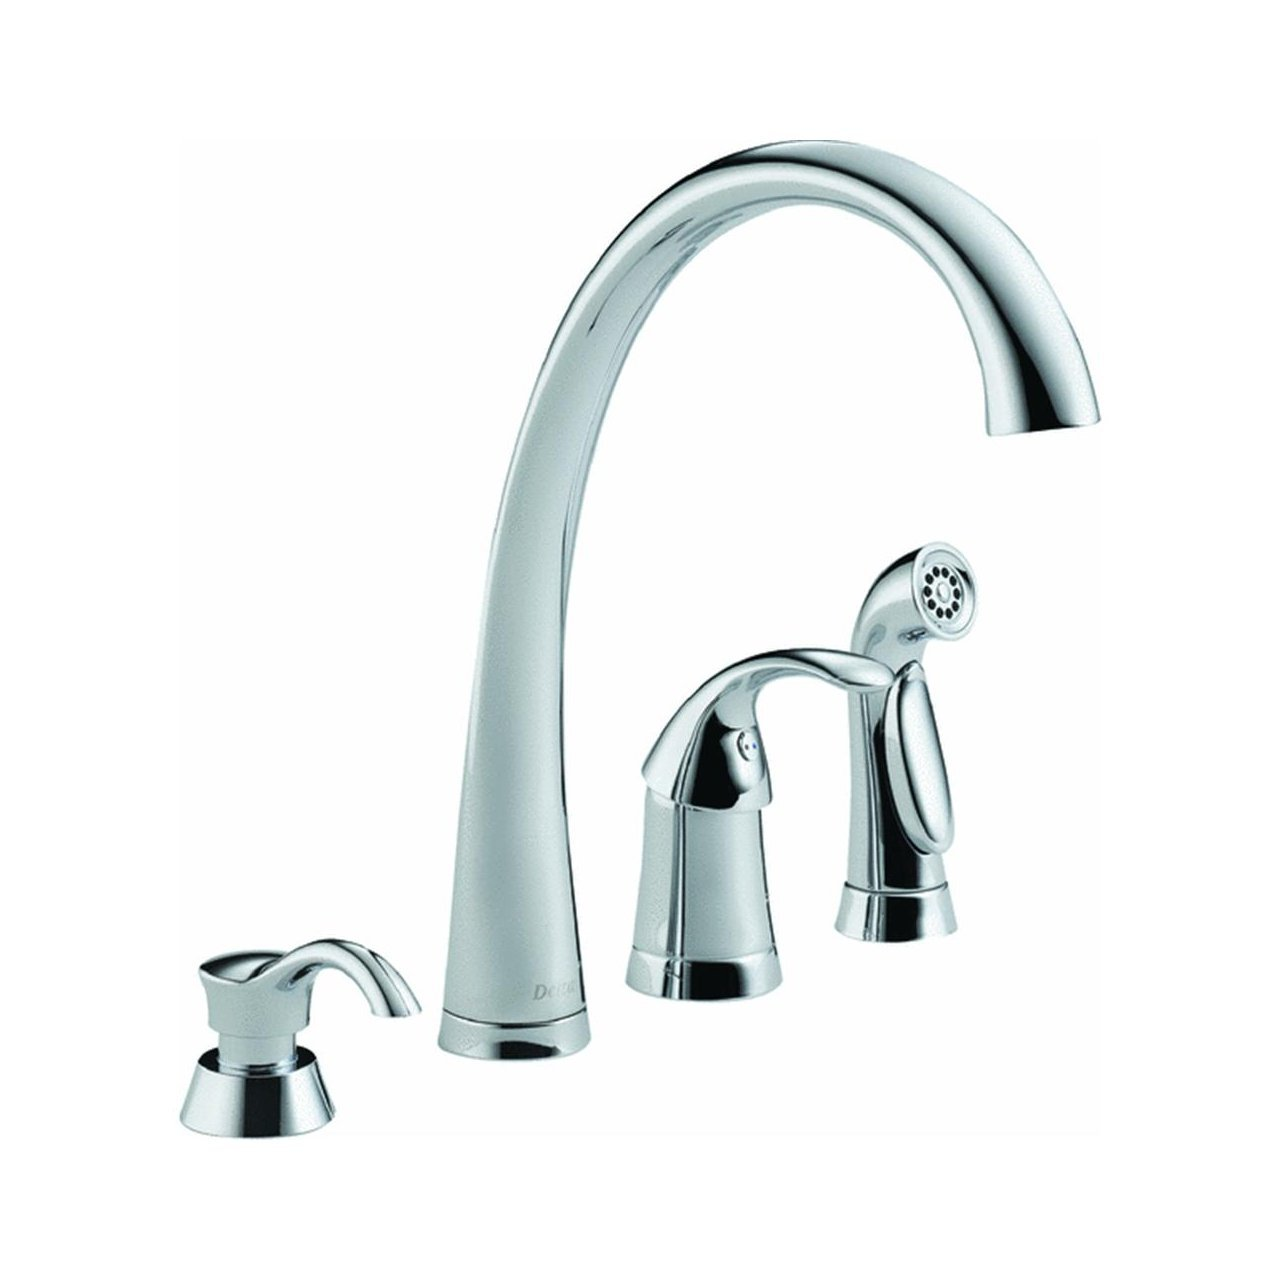 Delta 4380-SD-DST Single Handle Kitchen Faucet with Spray and Soap Dispenser